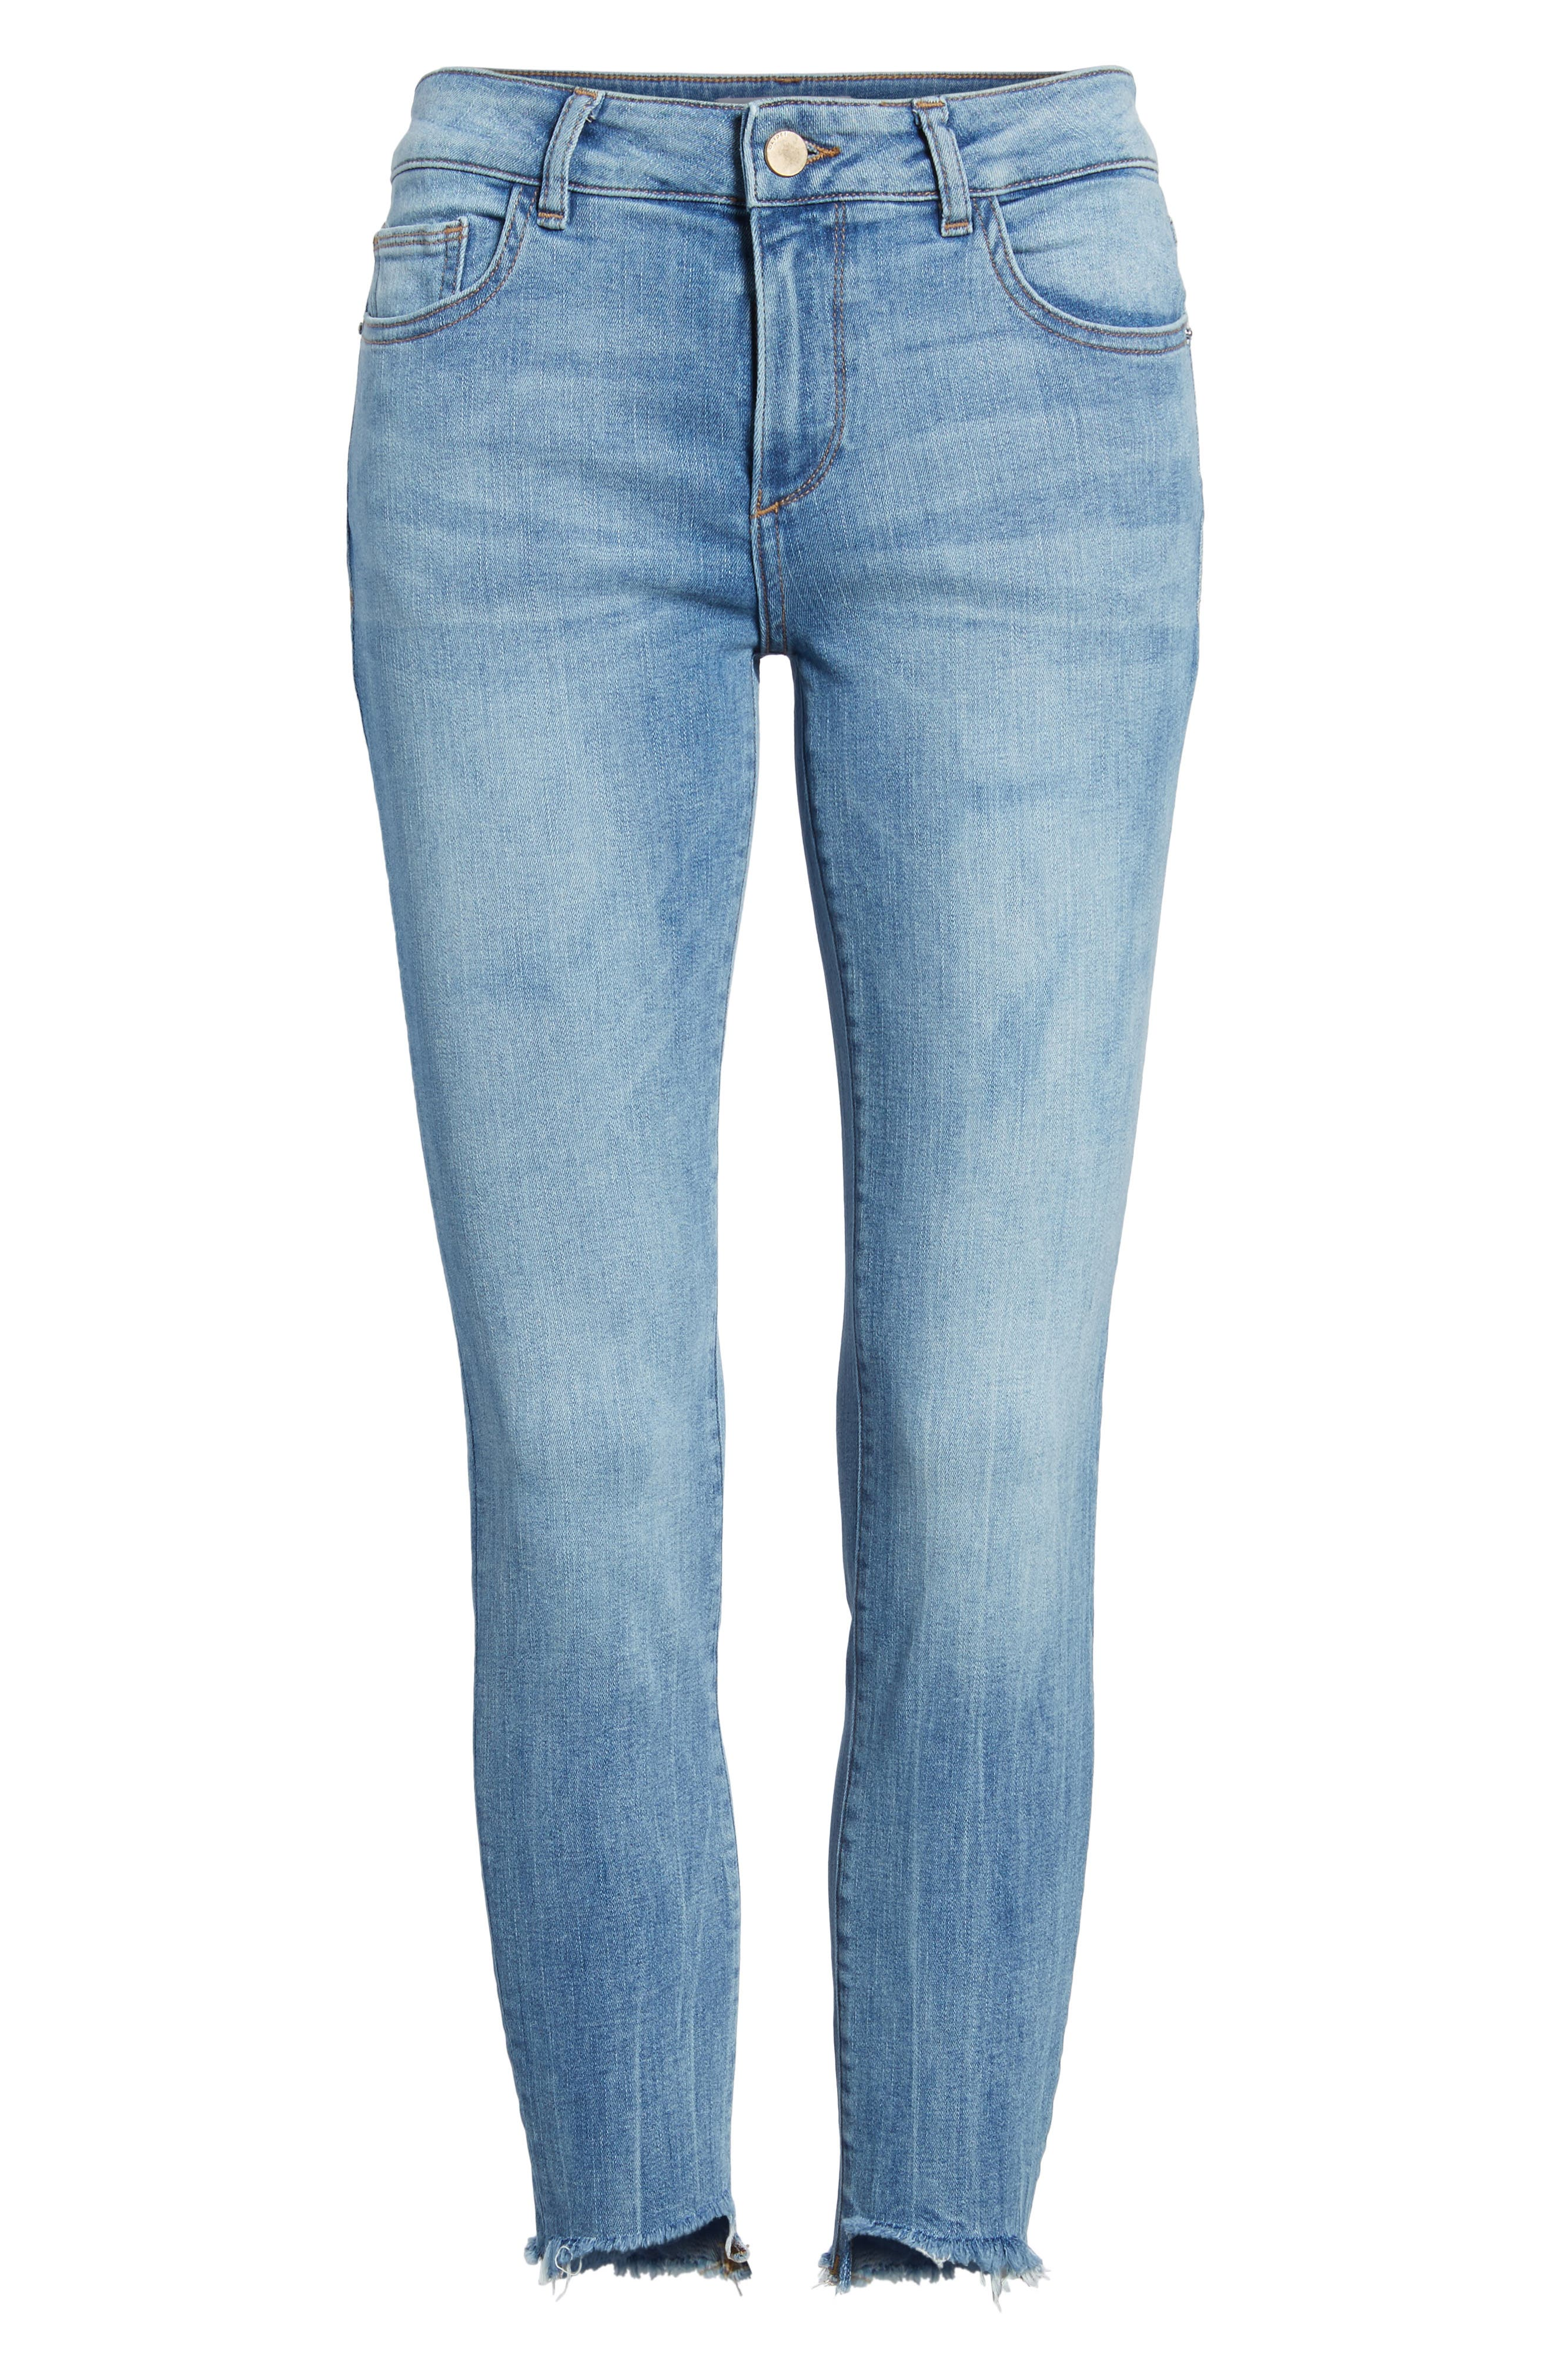 Florence Instasculpt Crop Skinny Jeans,                             Alternate thumbnail 7, color,                             429